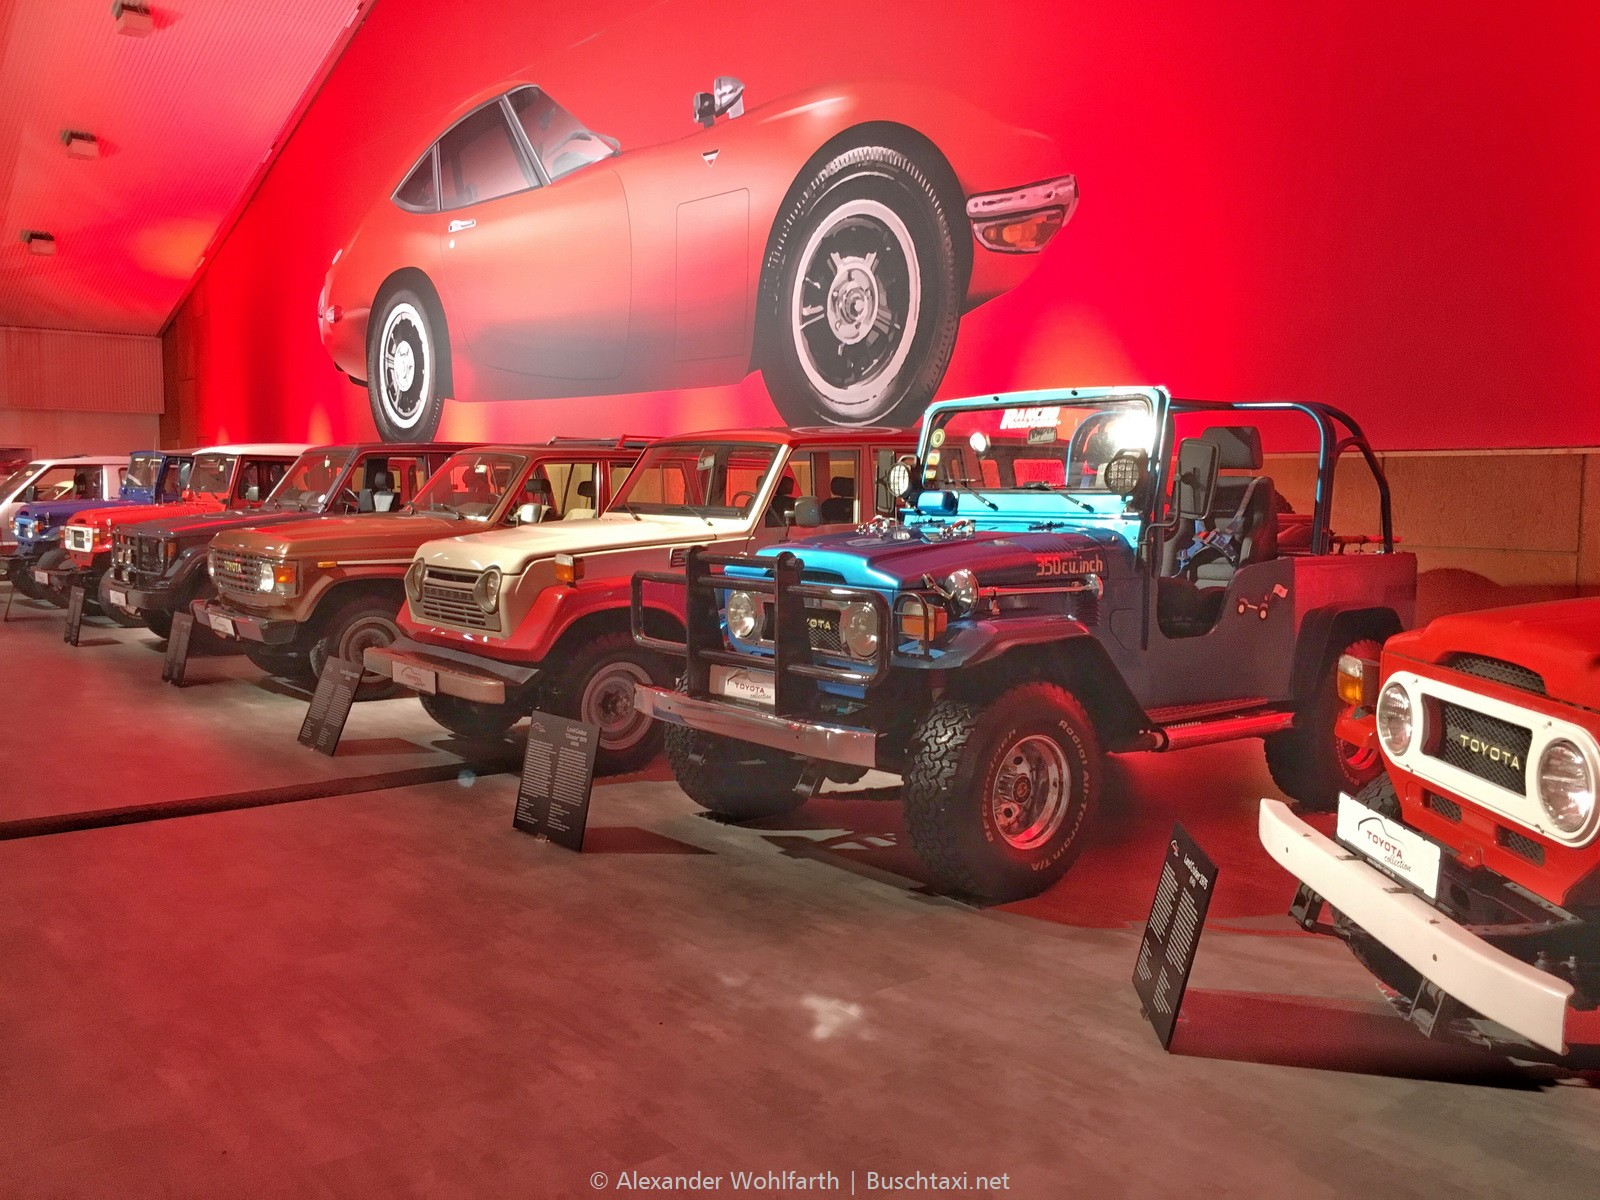 2017-11-23 toyota collection 14